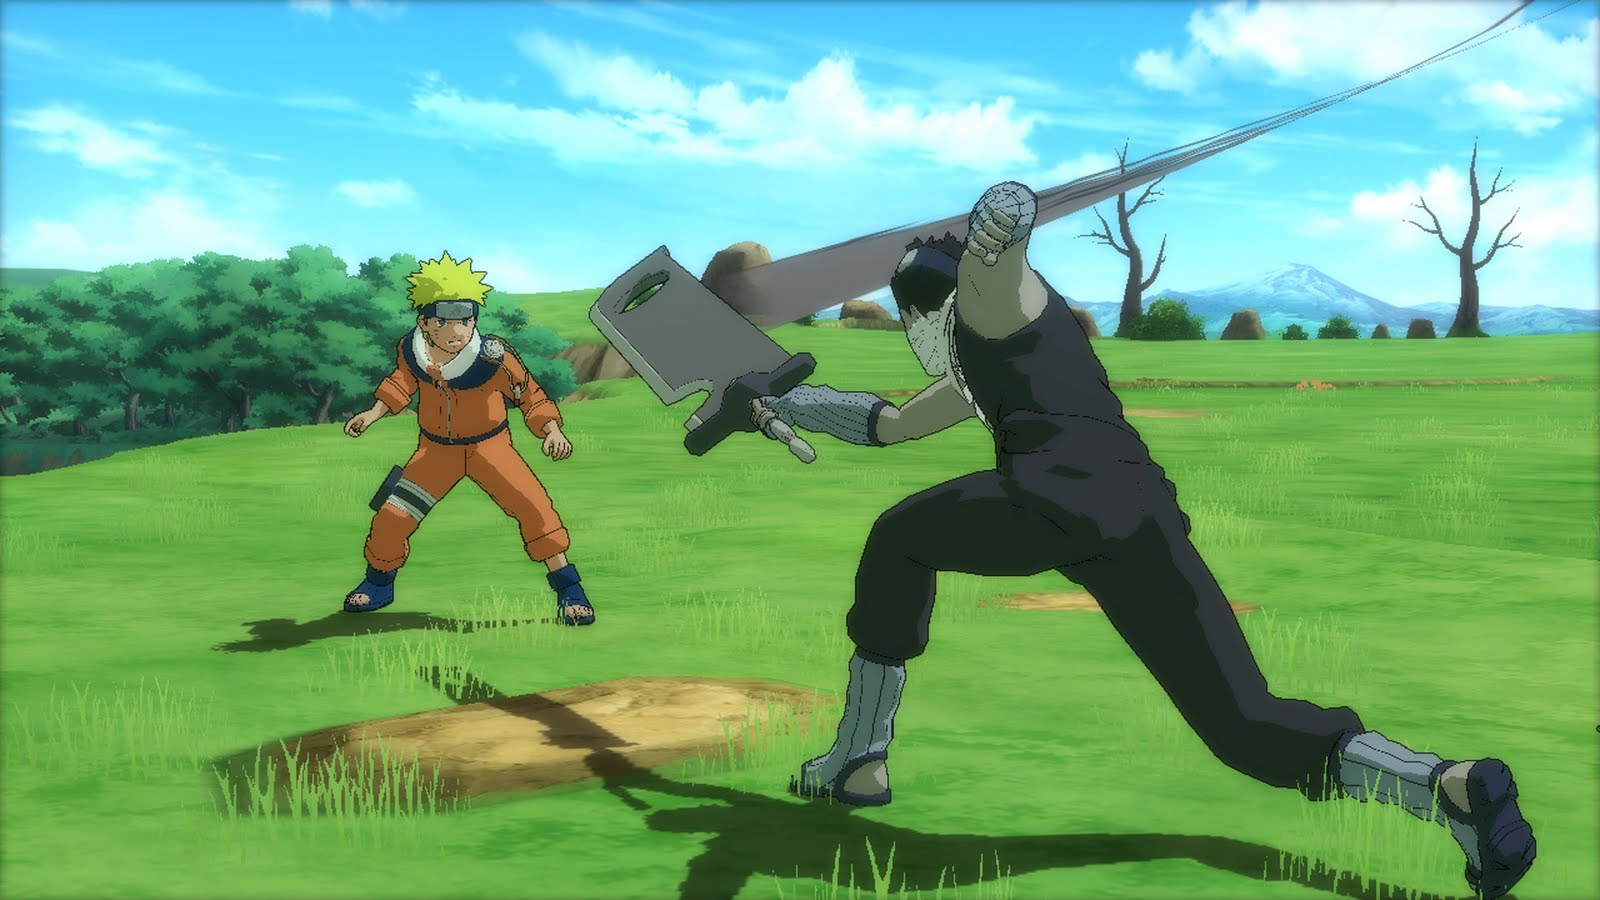 Download naruto shippuden ultimate